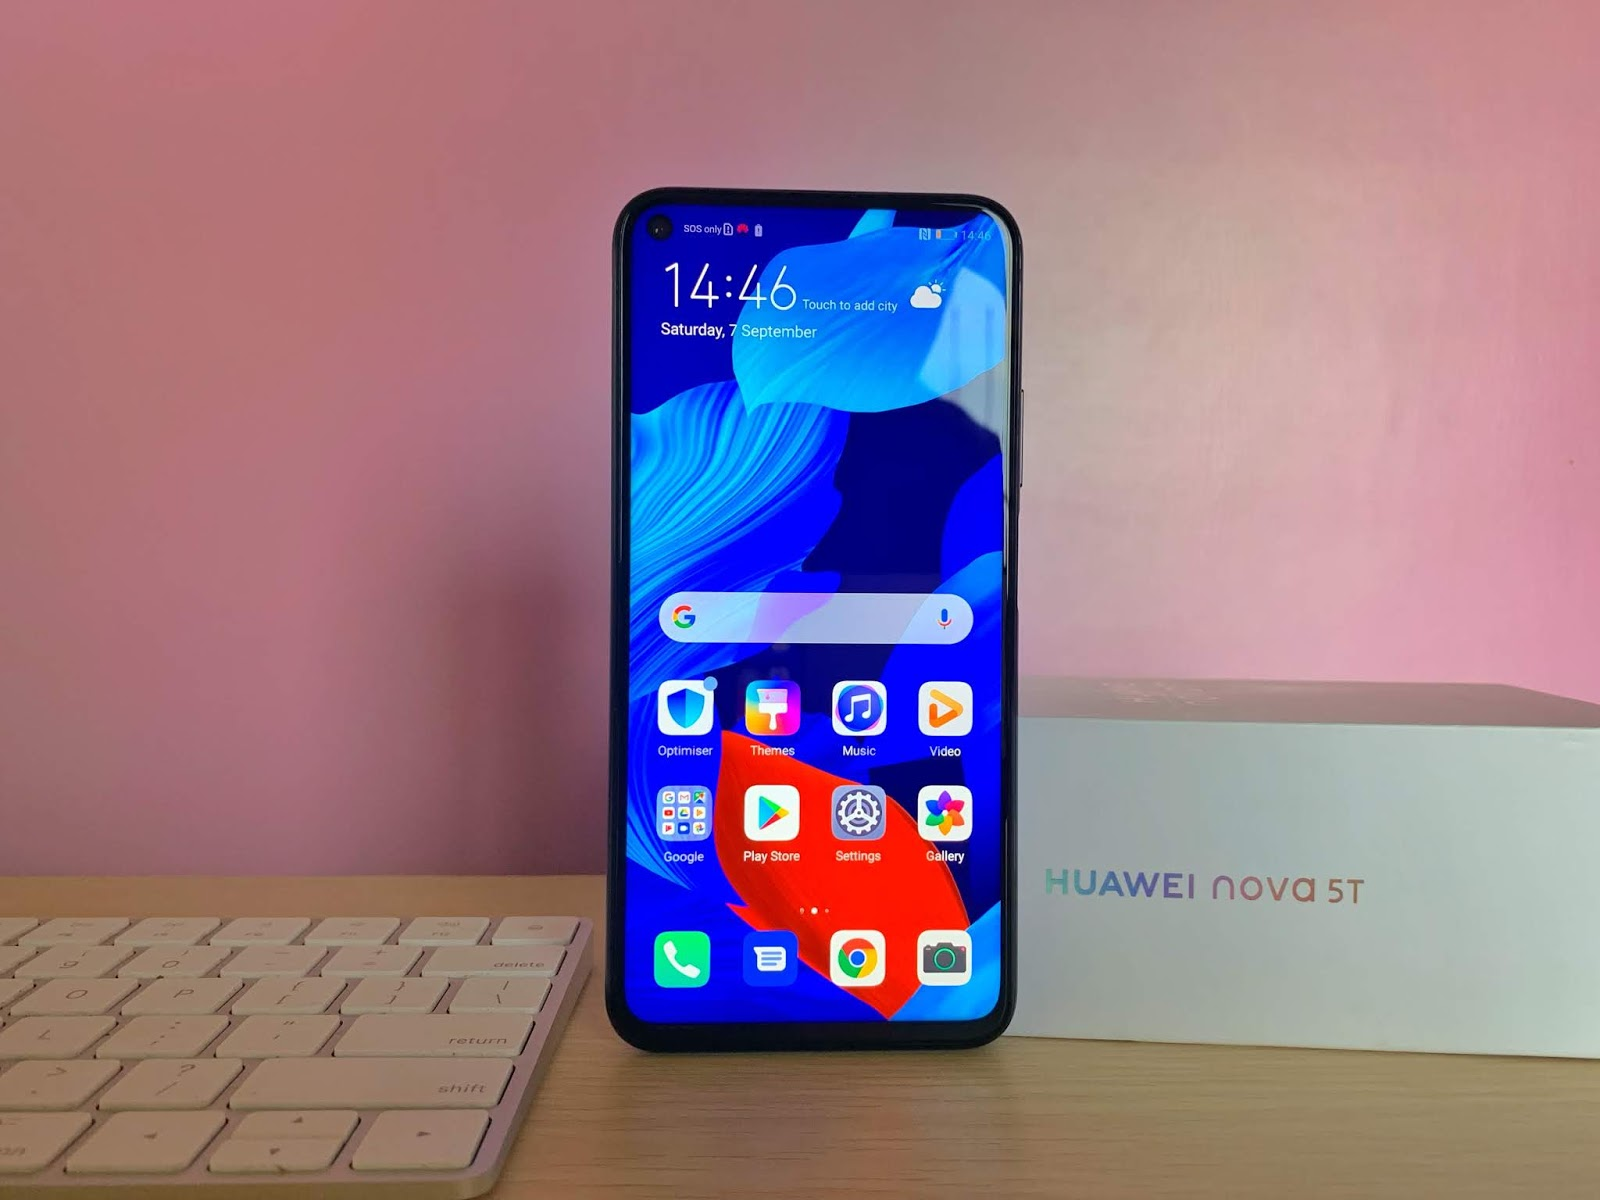 HUAWEI Nova 5T - Latest Flagship Killer?